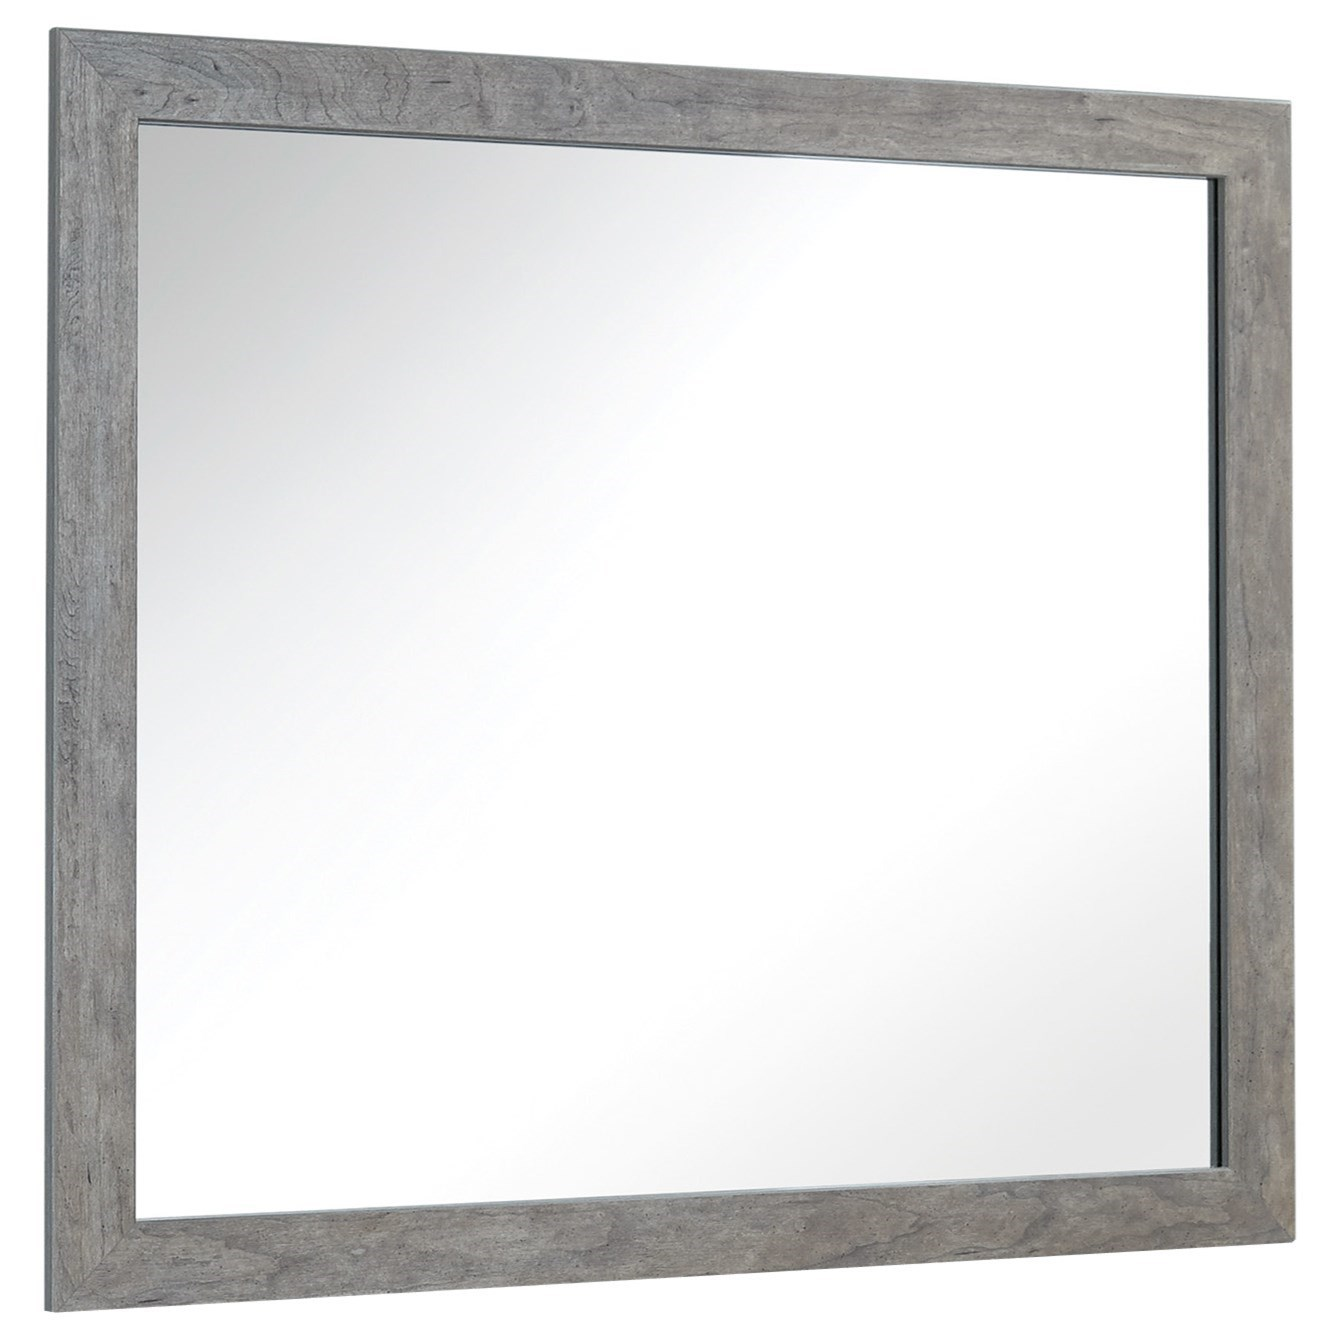 Signature Design by Ashley Culverbach Mirror - Item Number: B070-36